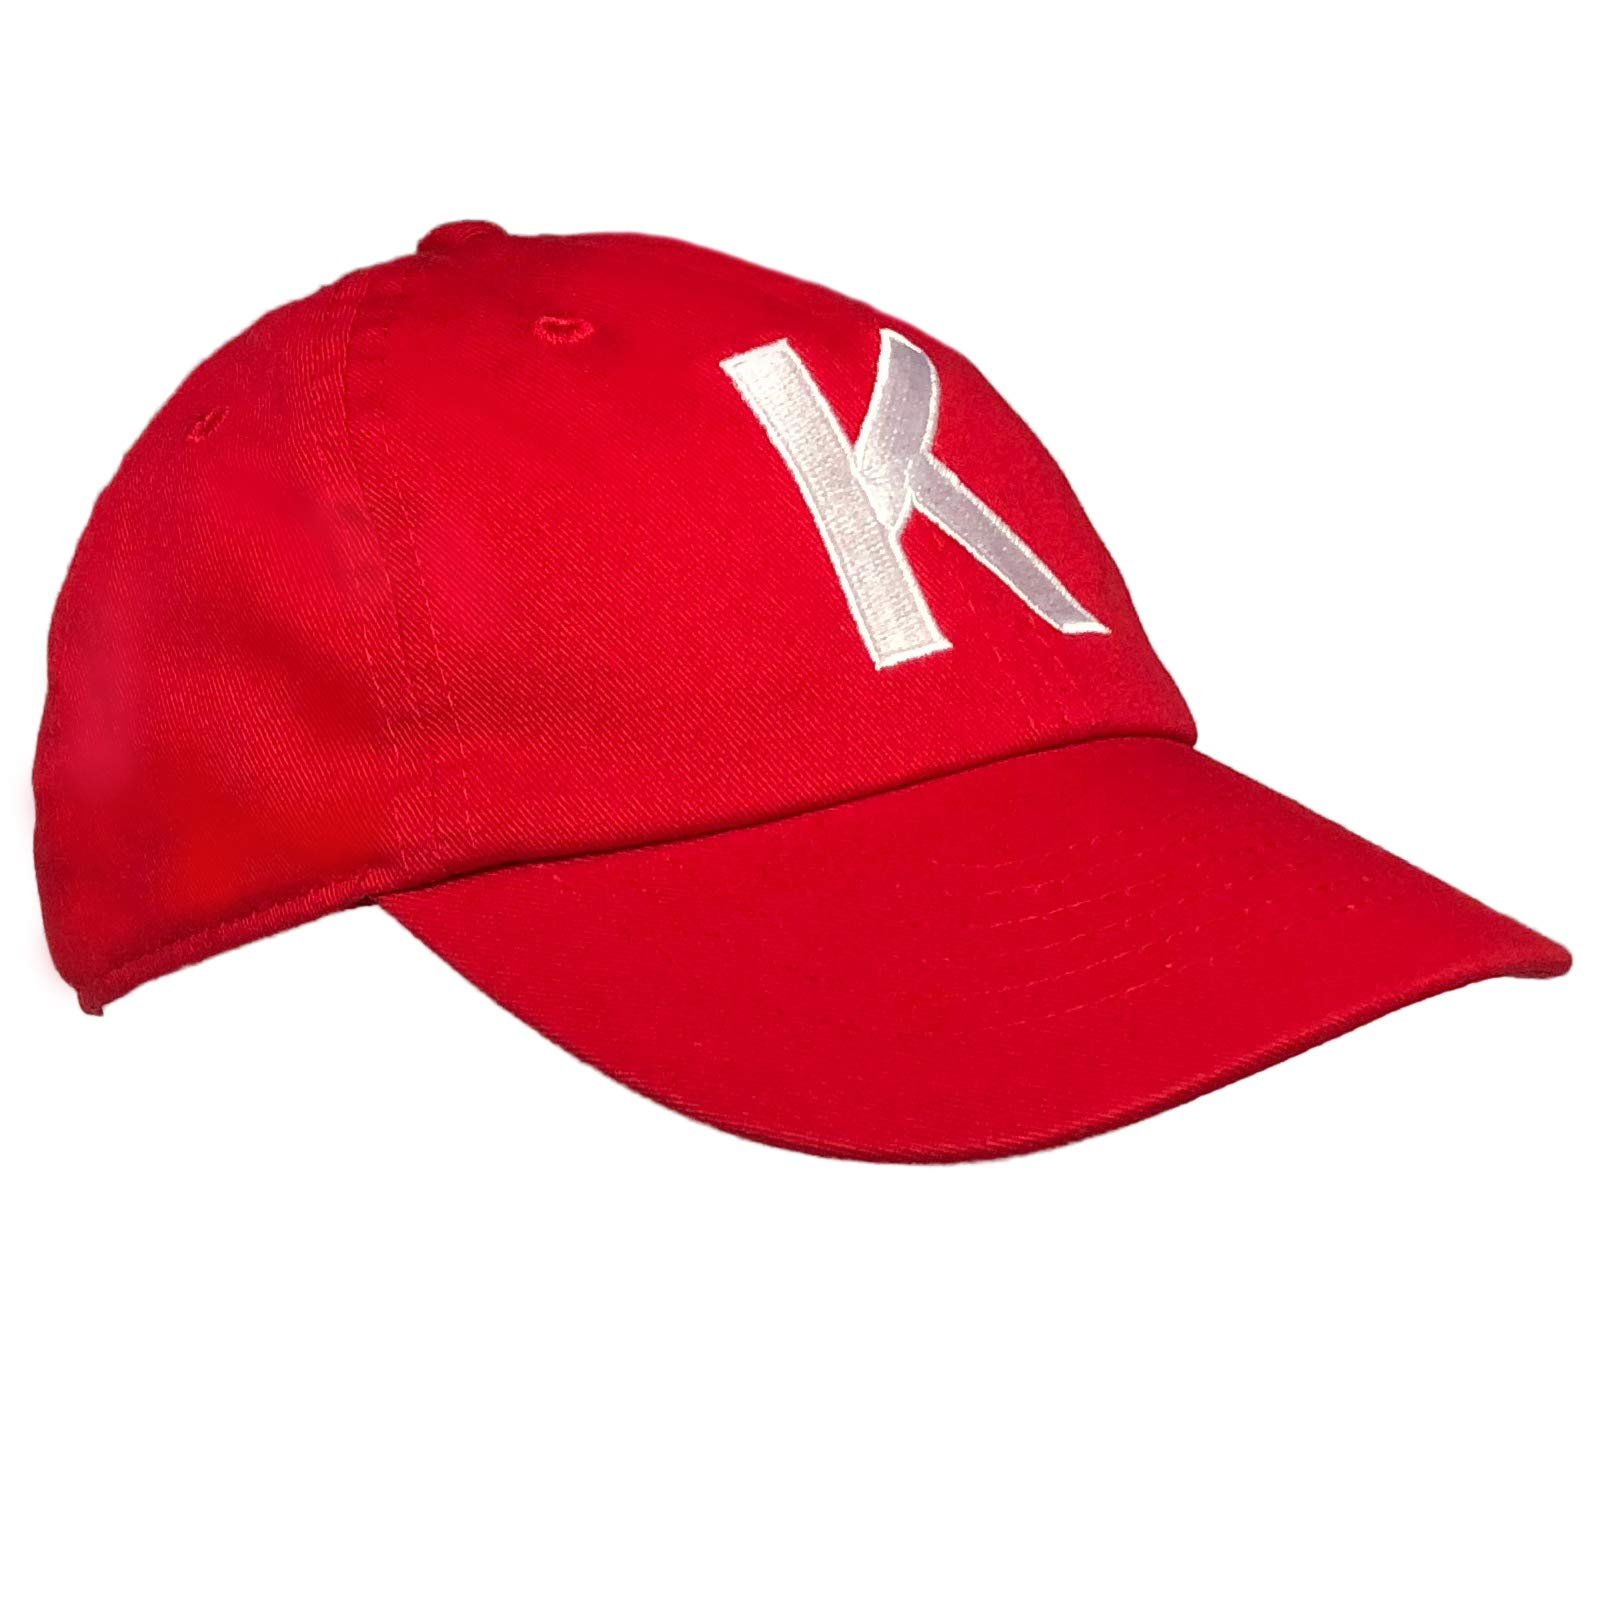 Tiny Expressions Toddler Boys' and Girls' Red Embroidered Initial Baseball Hat Monogrammed Cap (K, 2-6yrs)